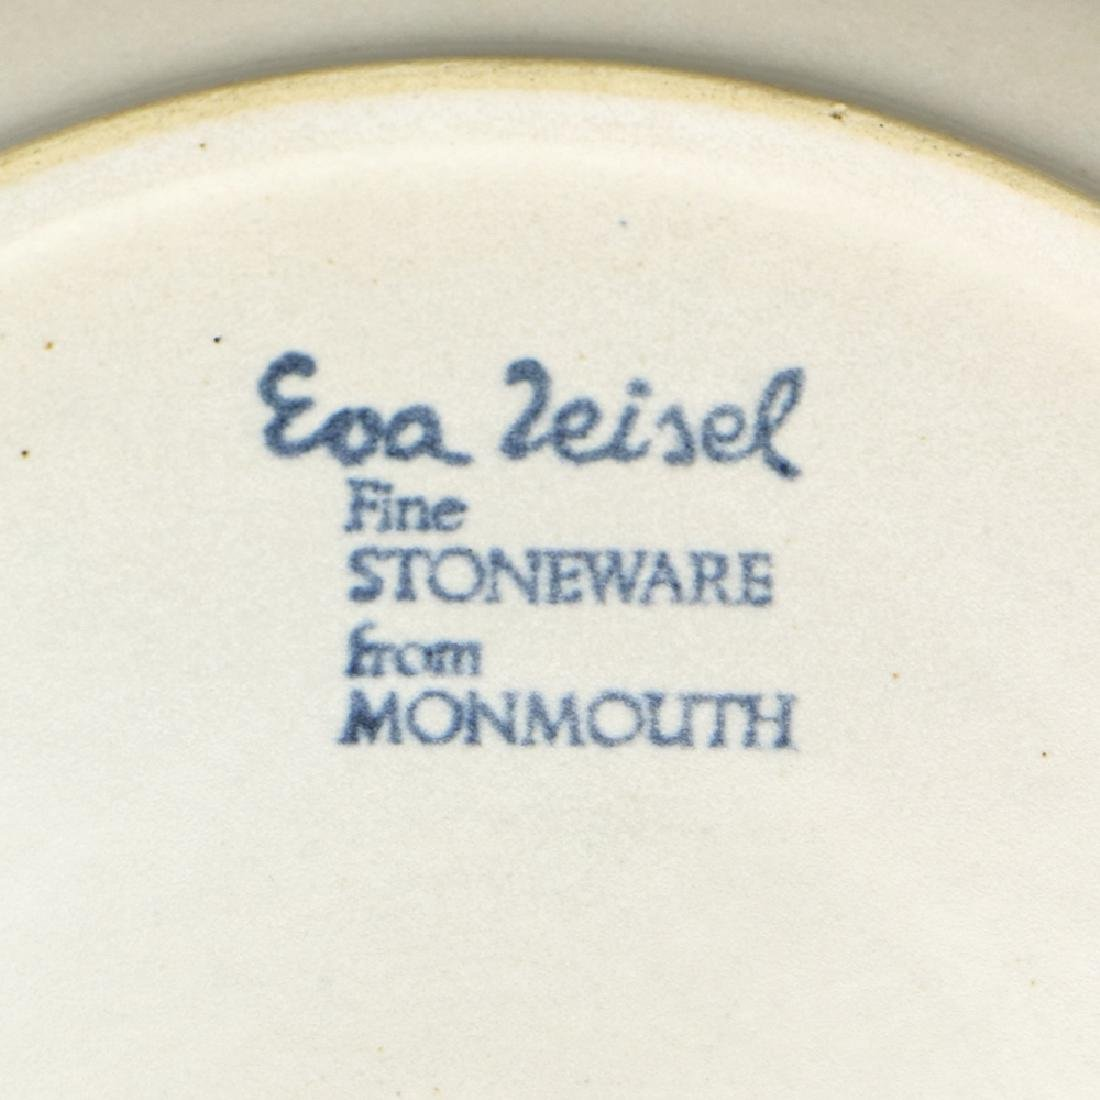 Eva Zeisel, 3 Rare Monmouth Feathered Friends Plates - 3